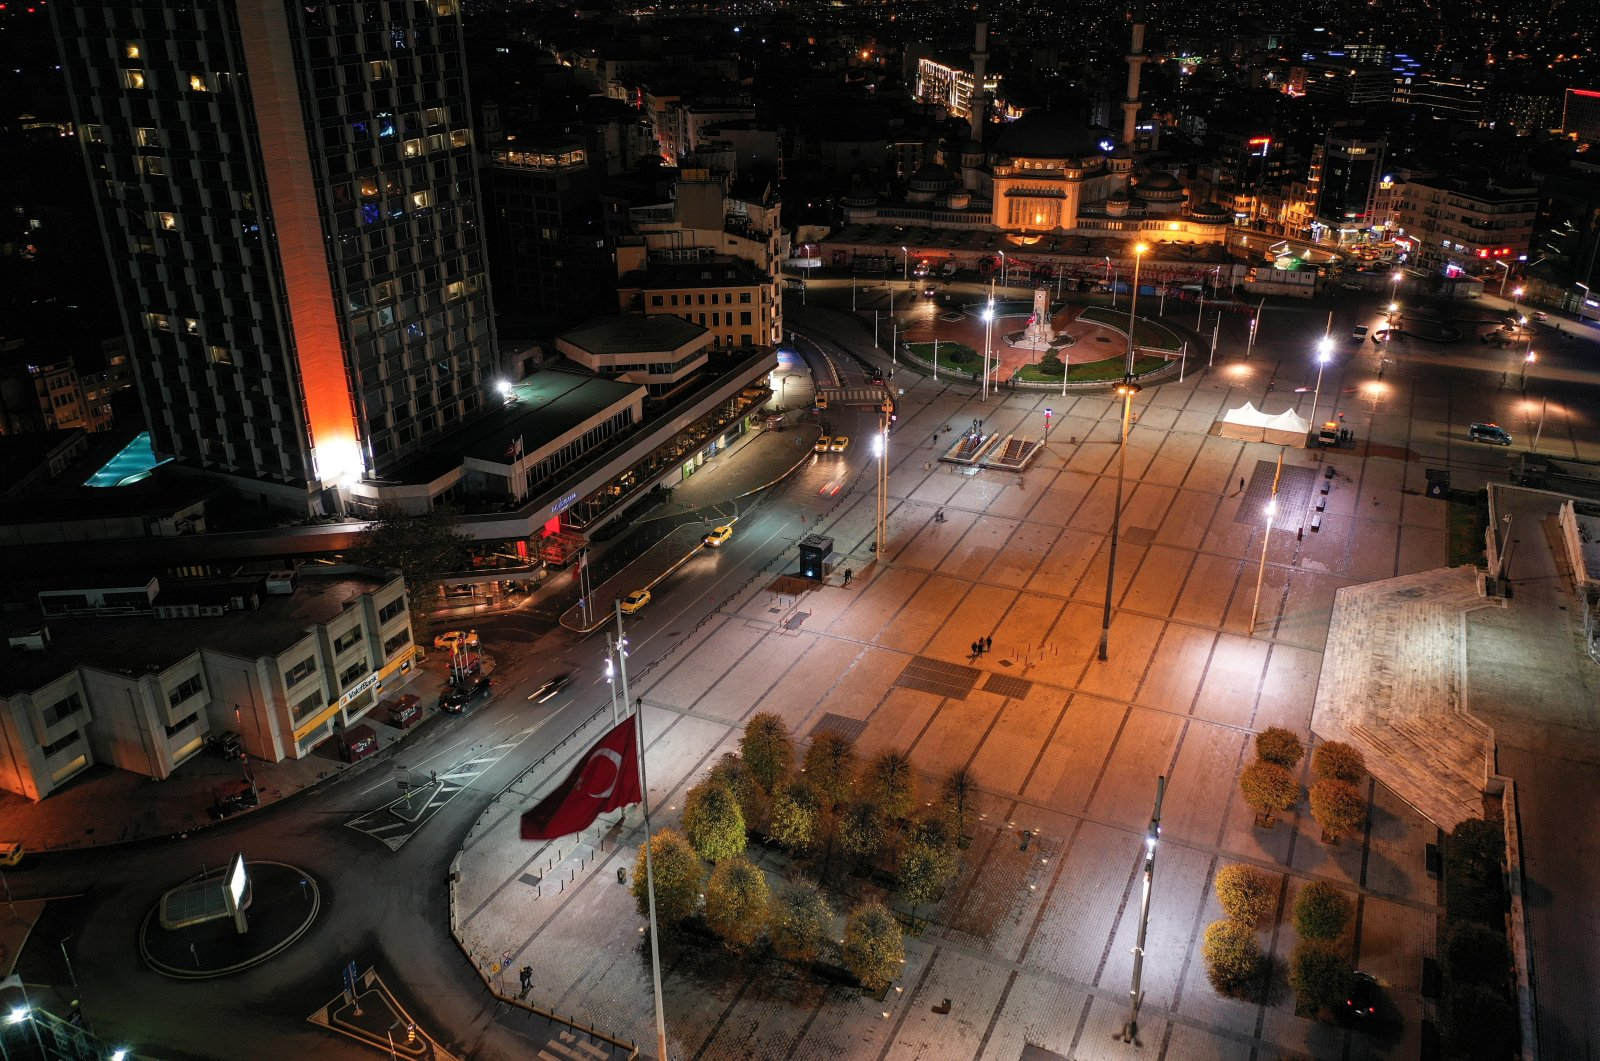 Drone footage of a deserted Taksim Square, a popular touristic neighborhood in Beyoğlu, Istanbul, during a nation-wide weekday curfew to combat the spread of COVID-19, Dec. 1, 2020. (Reuters Photo)